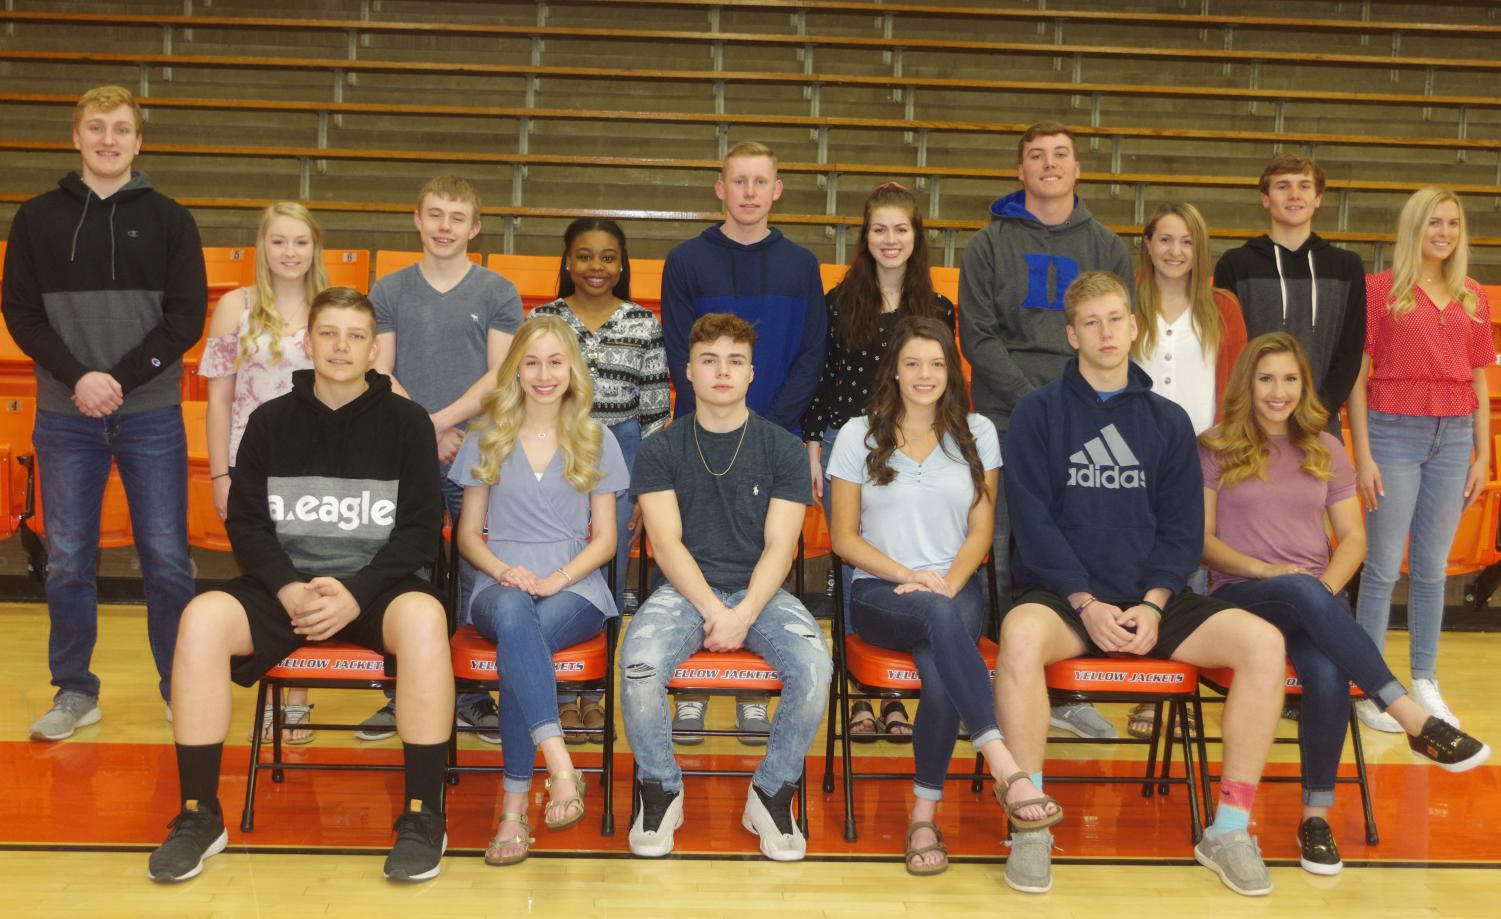 Prom court members are (front, from left) juniors Chett Andrews, Adeline Blechle, Ethan Rayburn, Ashtyn Jany, Ian Reith and Ryn Petrowske' and (back row, from left) Drake Bollman, Cara Childs, Erik Cowell, Sylena Martin, Jakob Cushman, Elizabeth Soellner, Nick Meyer, Carlee Weir, Colin Wingerter and Lauren Welge.